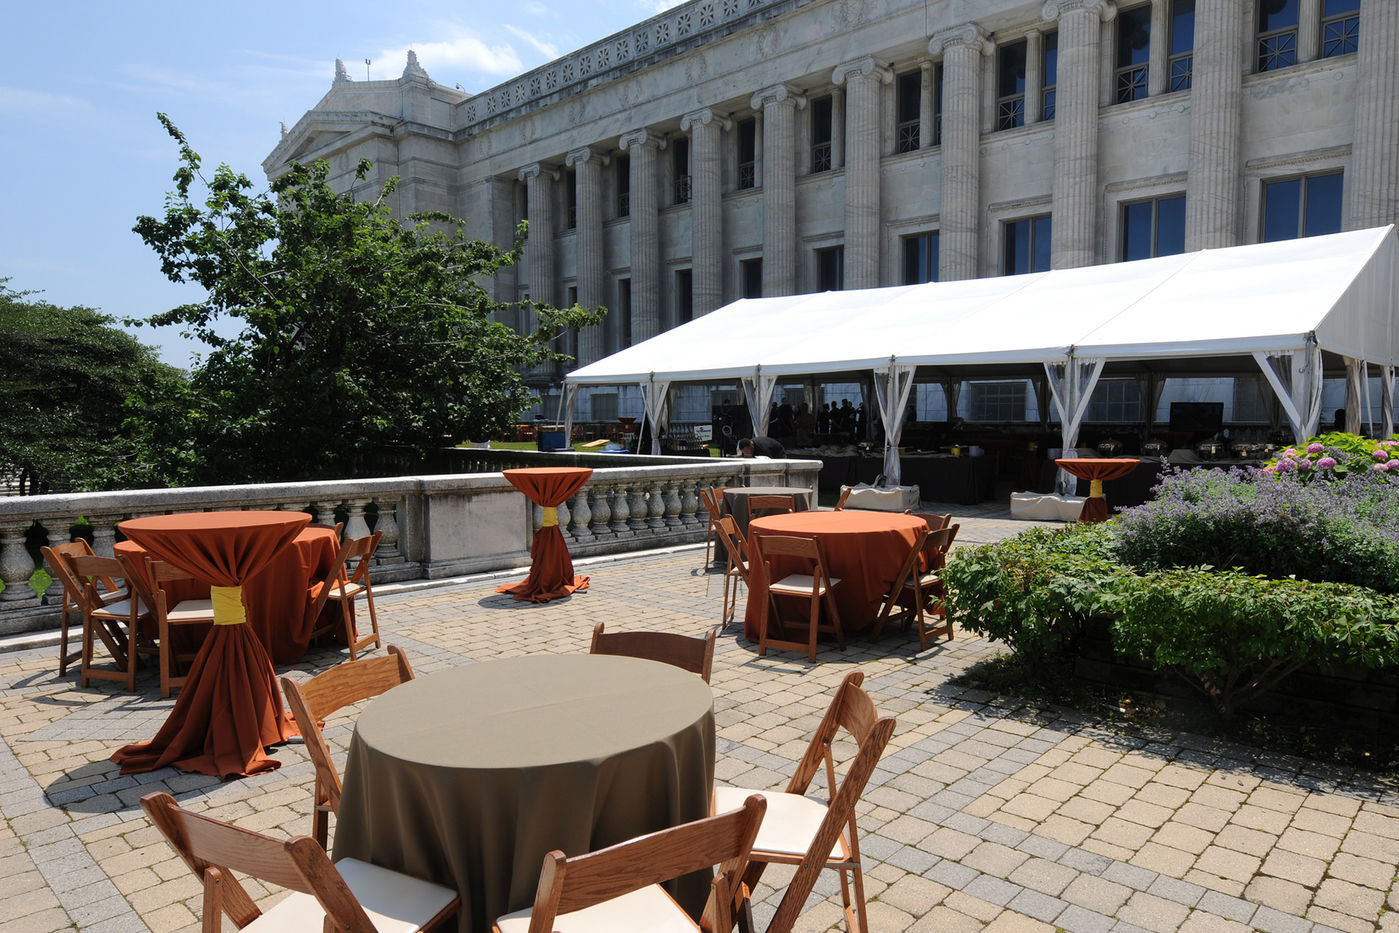 Tables set up on Field Museum's outdoor terrace. A tented area is visible in the background.